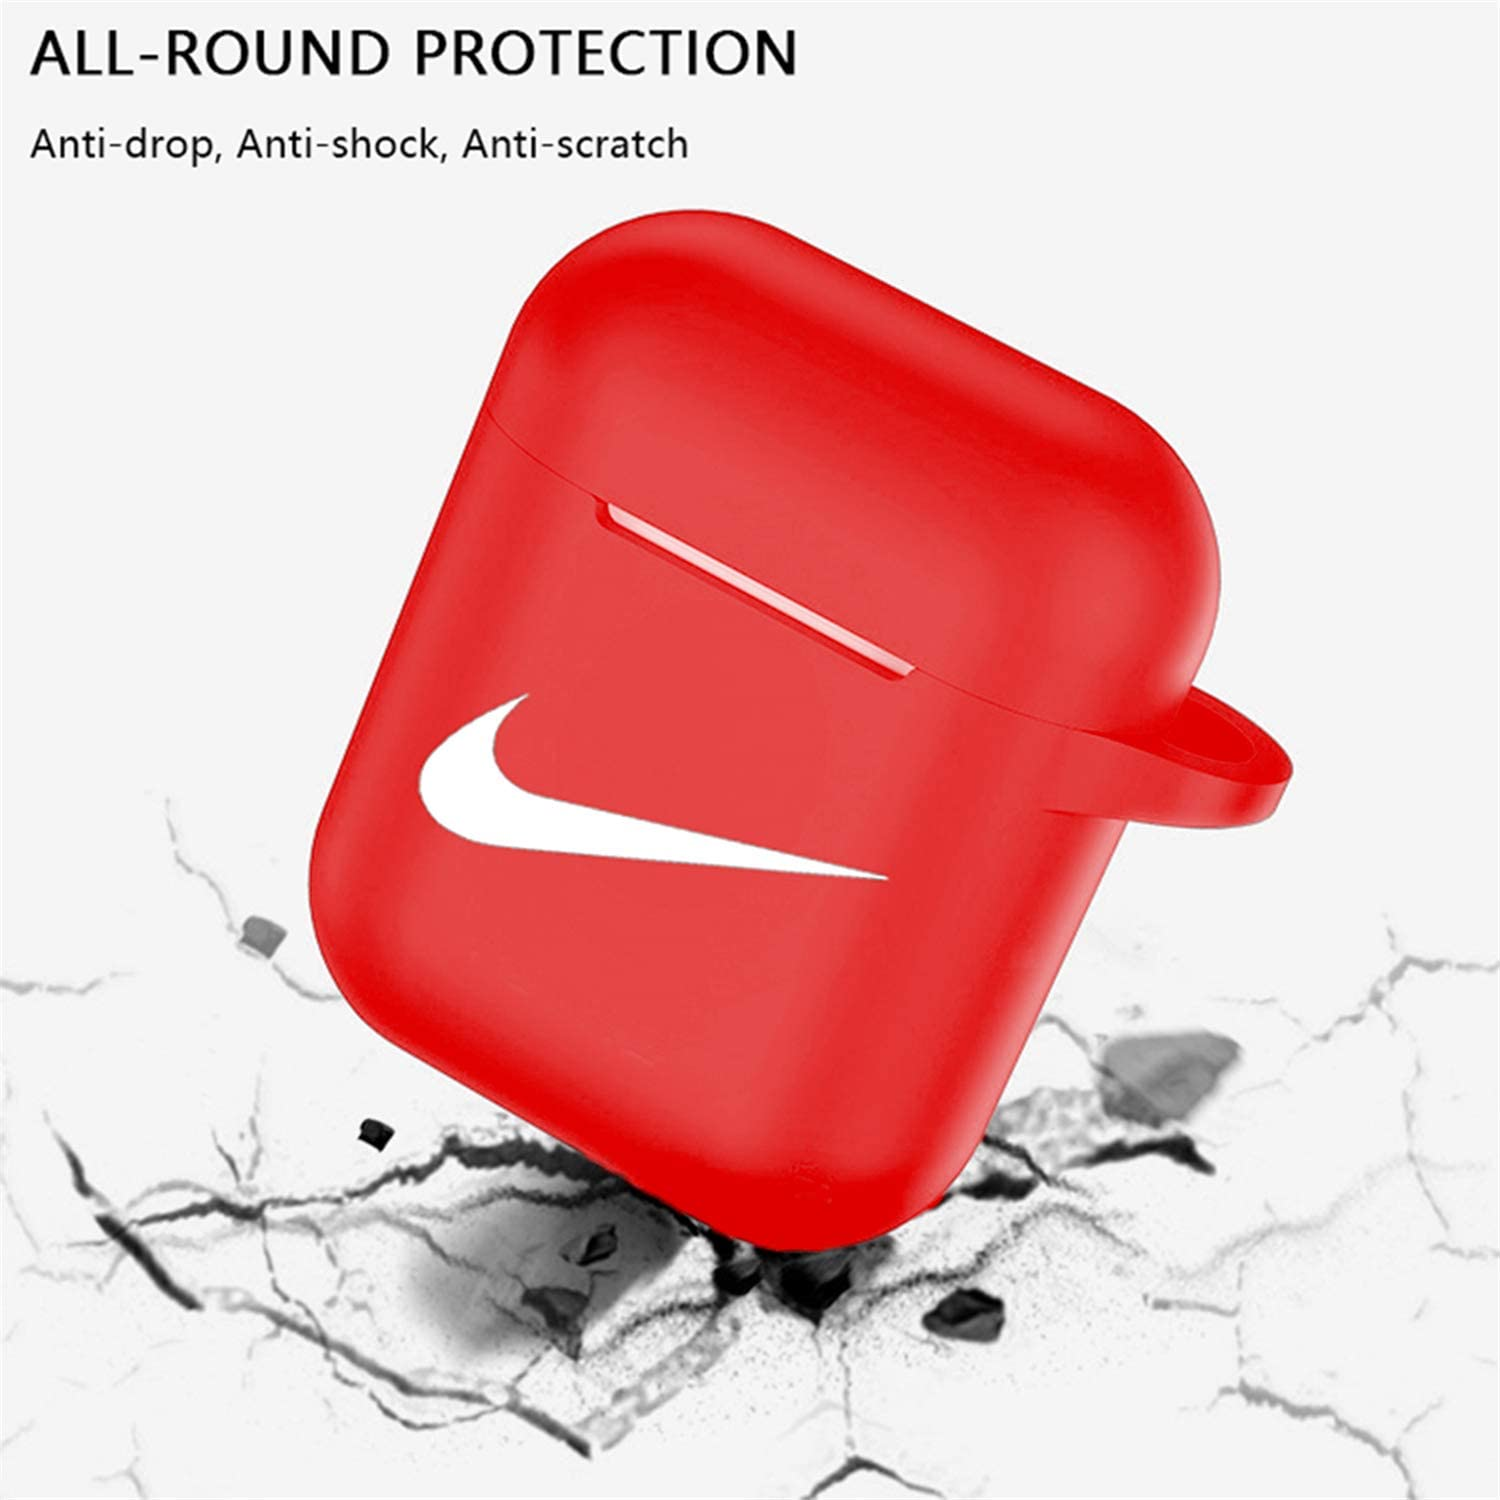 Cute 3D Luxury Character Soft Silicone Stylish Cover Sport Fun Cool Keychain Style Design Skin Black Adi Cases with Lanyard Chain,for Girls Kids Boys Men Air pods Punswan for Airpods 1/&2 Case